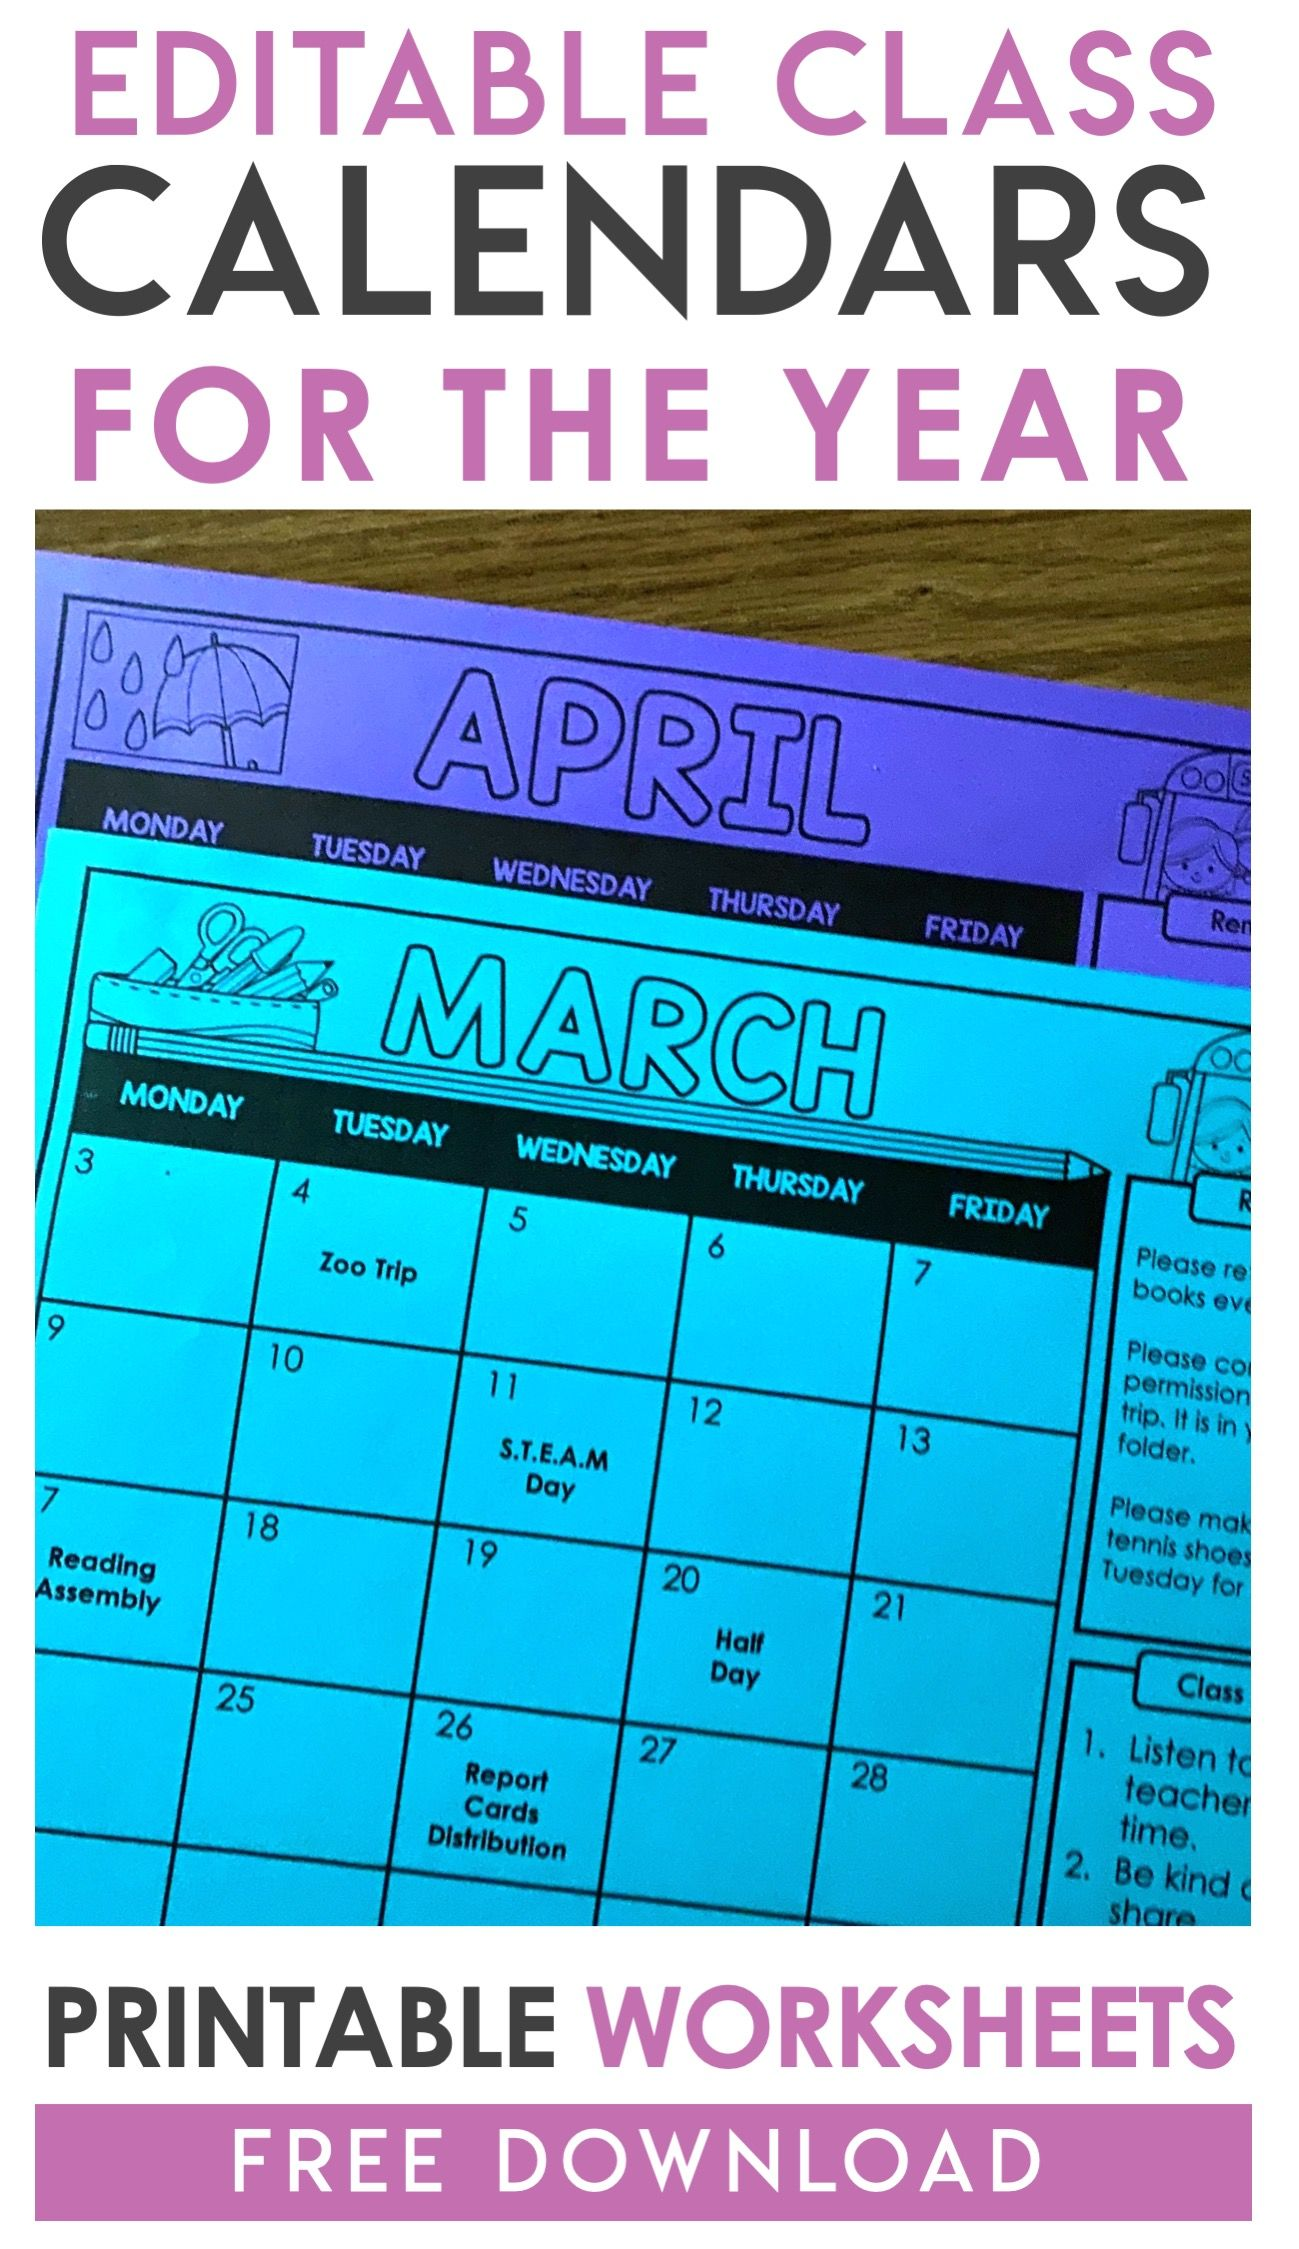 Free Editable Monthly Class Calendars